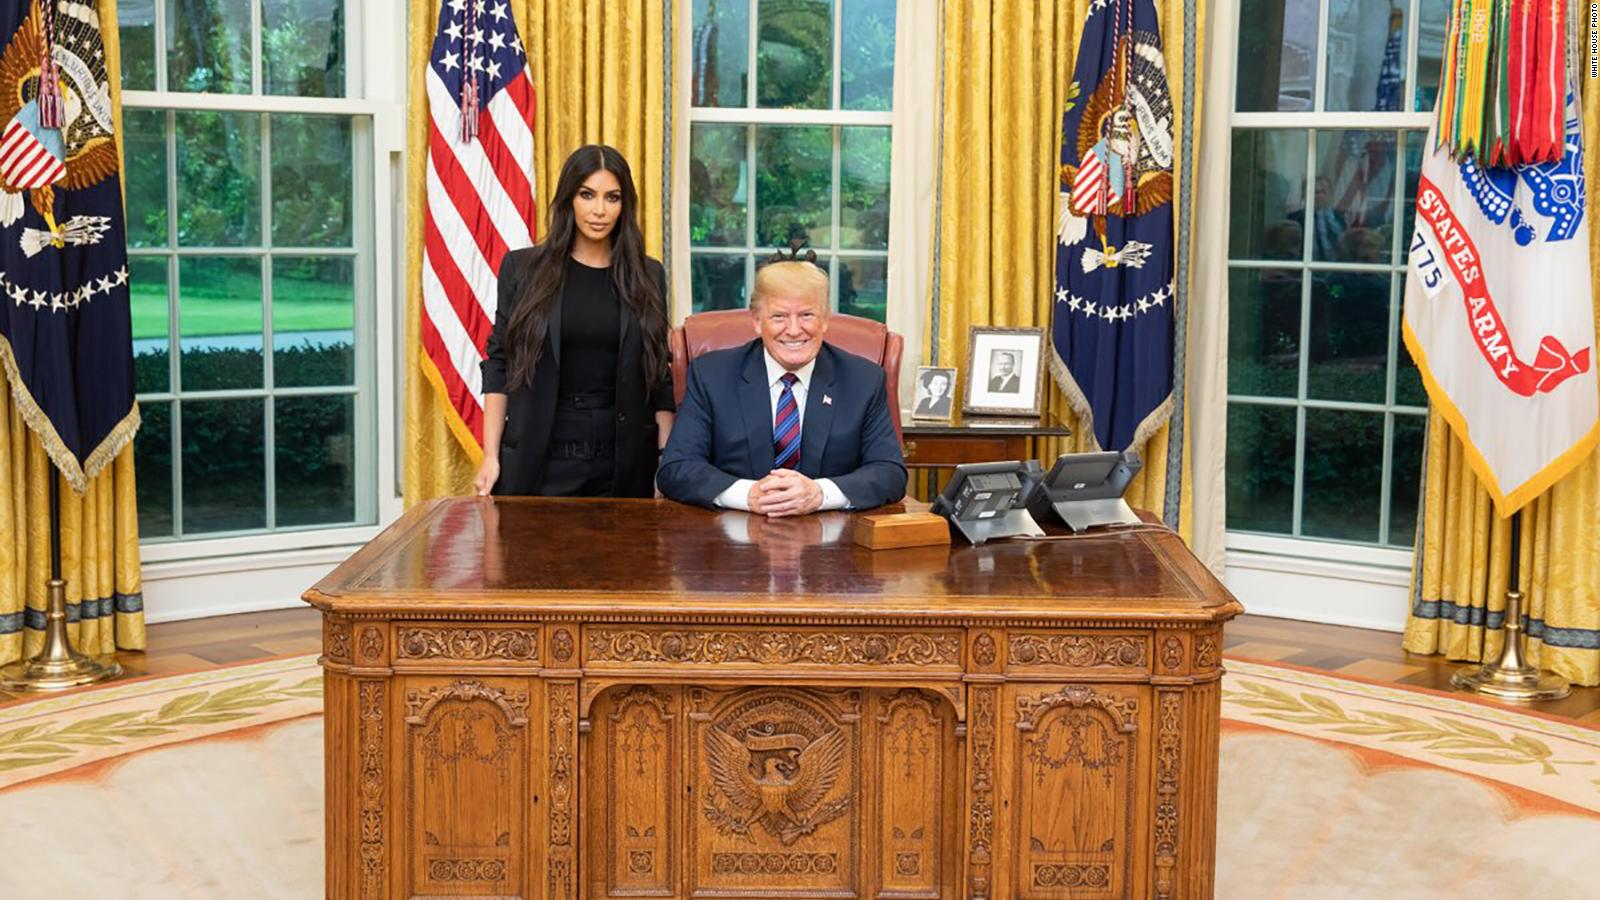 Its Official, Kim Kardashian Just Met With President Trump